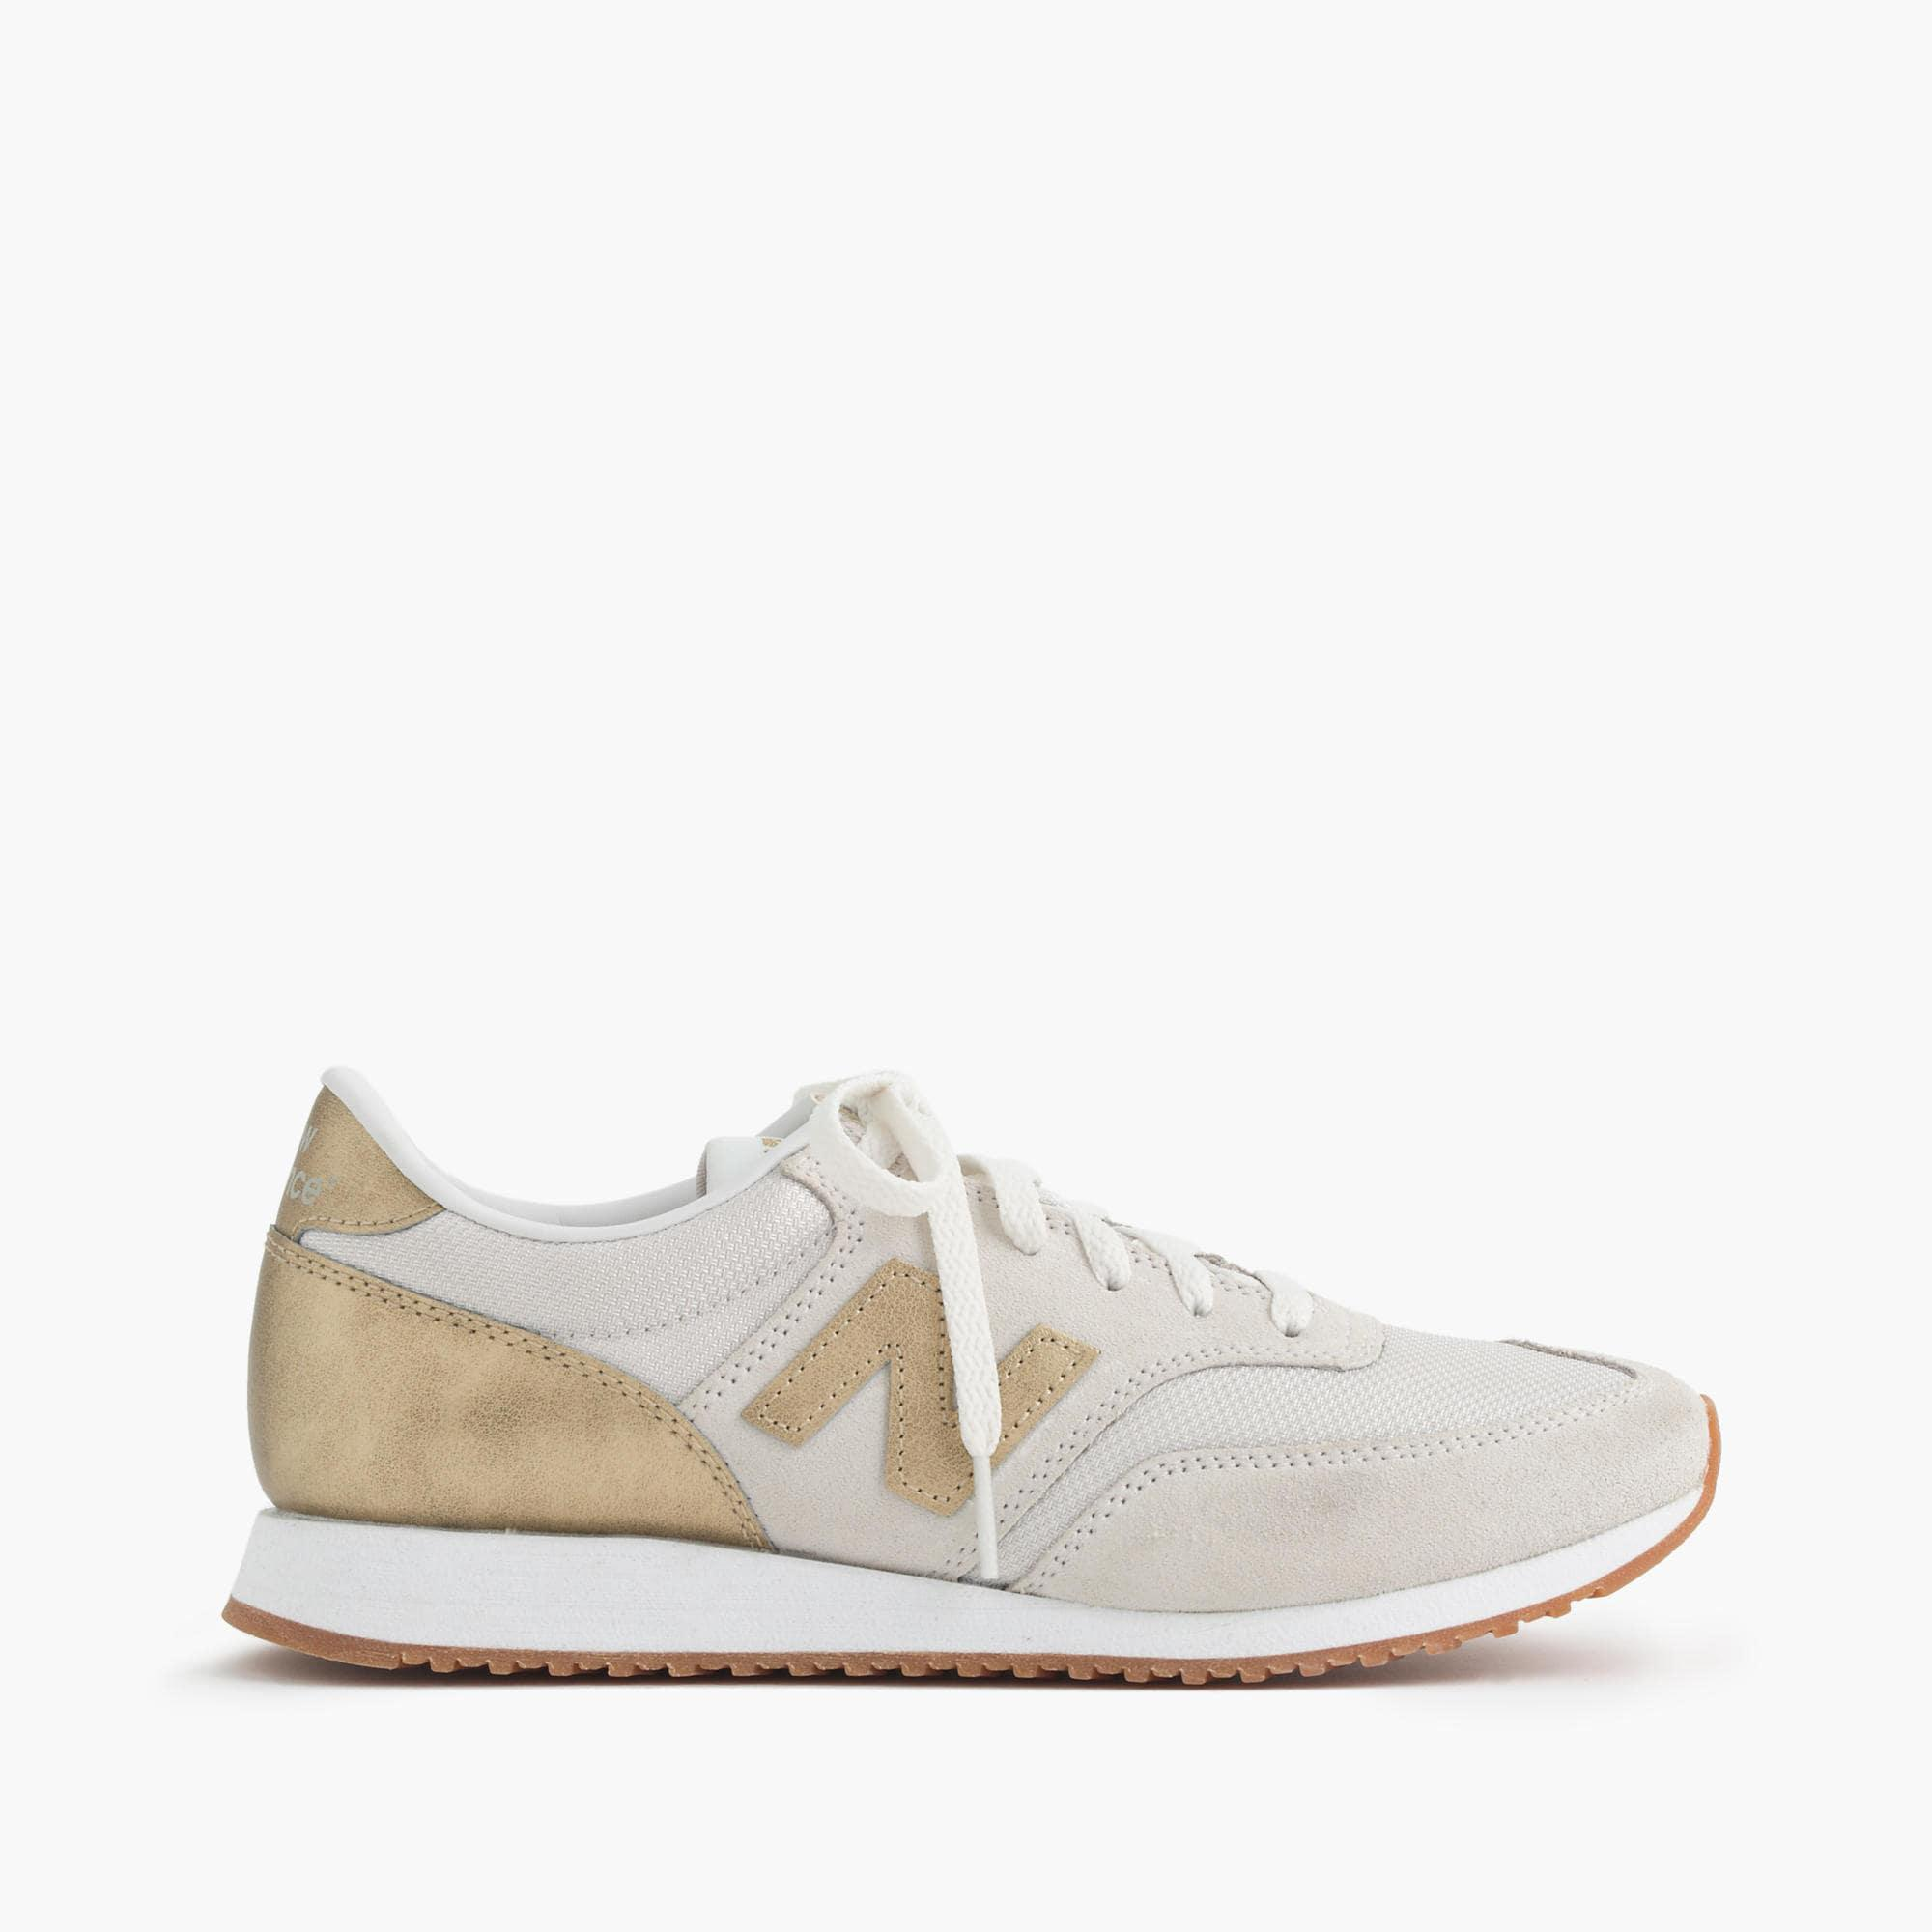 ae4d772e9c77 ... where to buy lyst j.crew new balance suede mesh and leather 620 sneakers  in